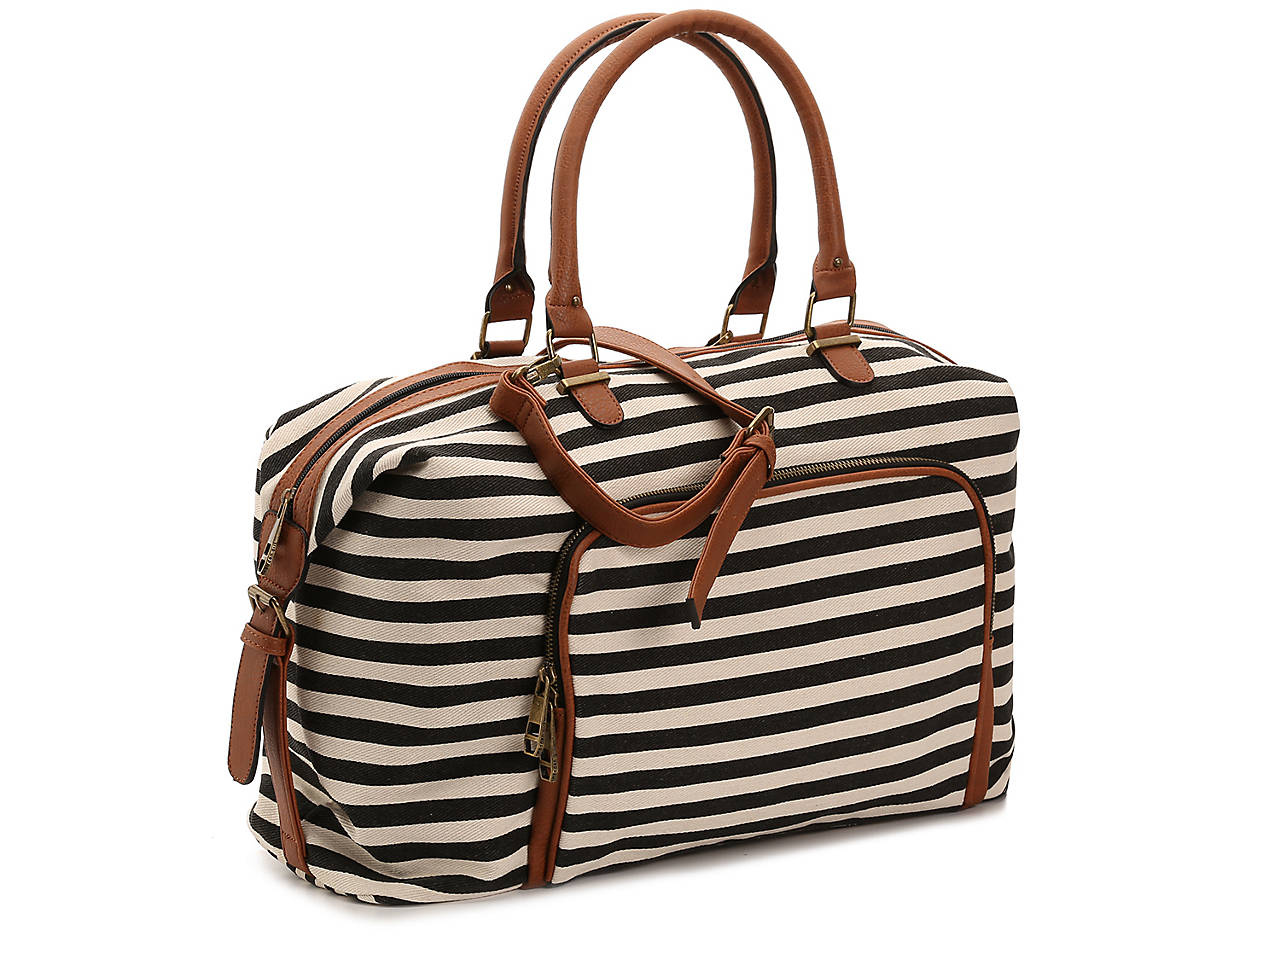 a7dfcbb5fd9d Madden Girl Crayon Weekender Bag Women s Handbags   Accessories